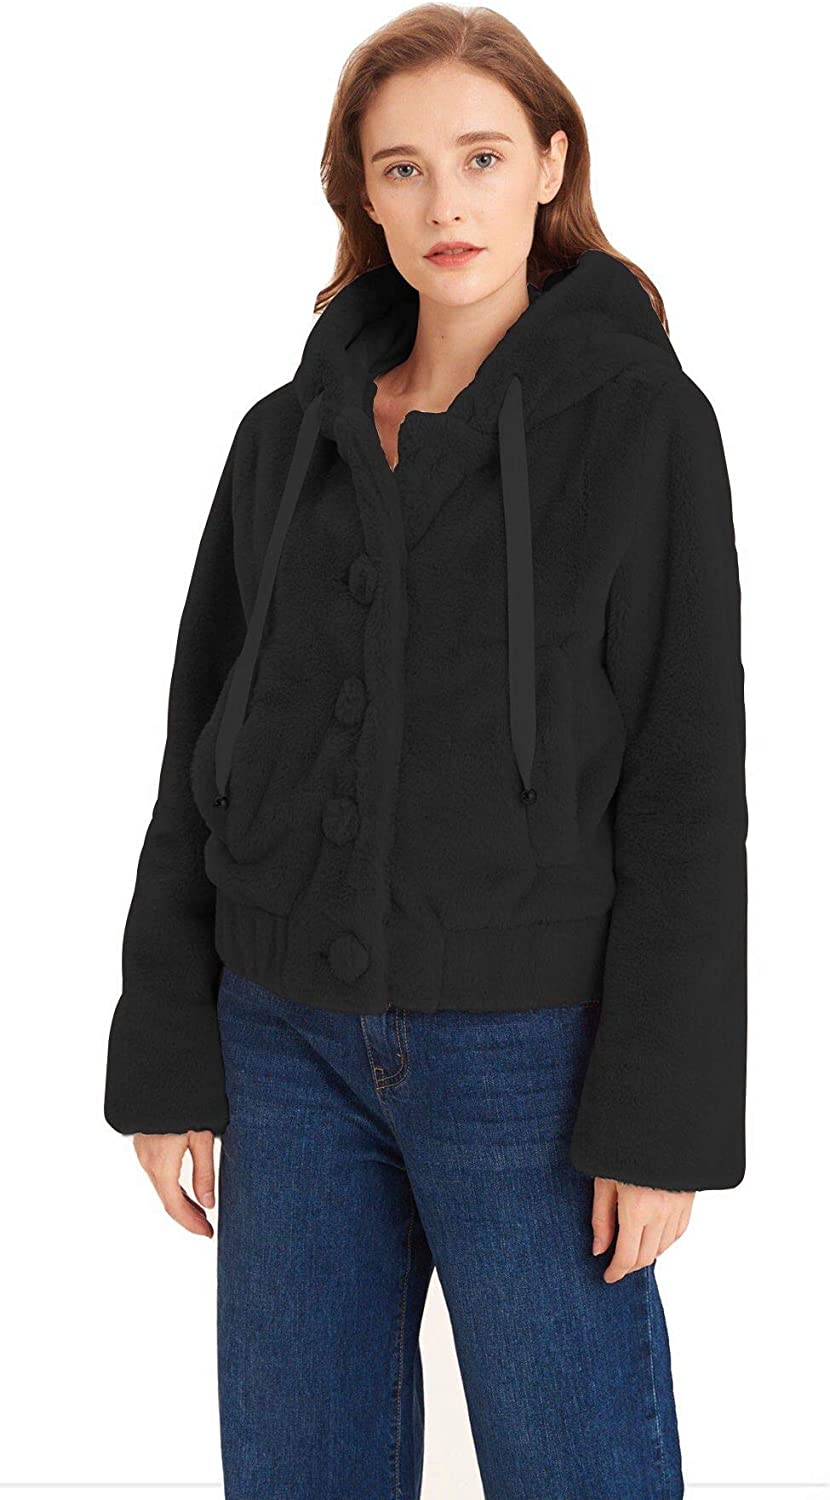 Womens Faux Fur Coat Casual Fuzzy Jacket with Hood Cardigans Outwear with 2 Side-Seam Pockets